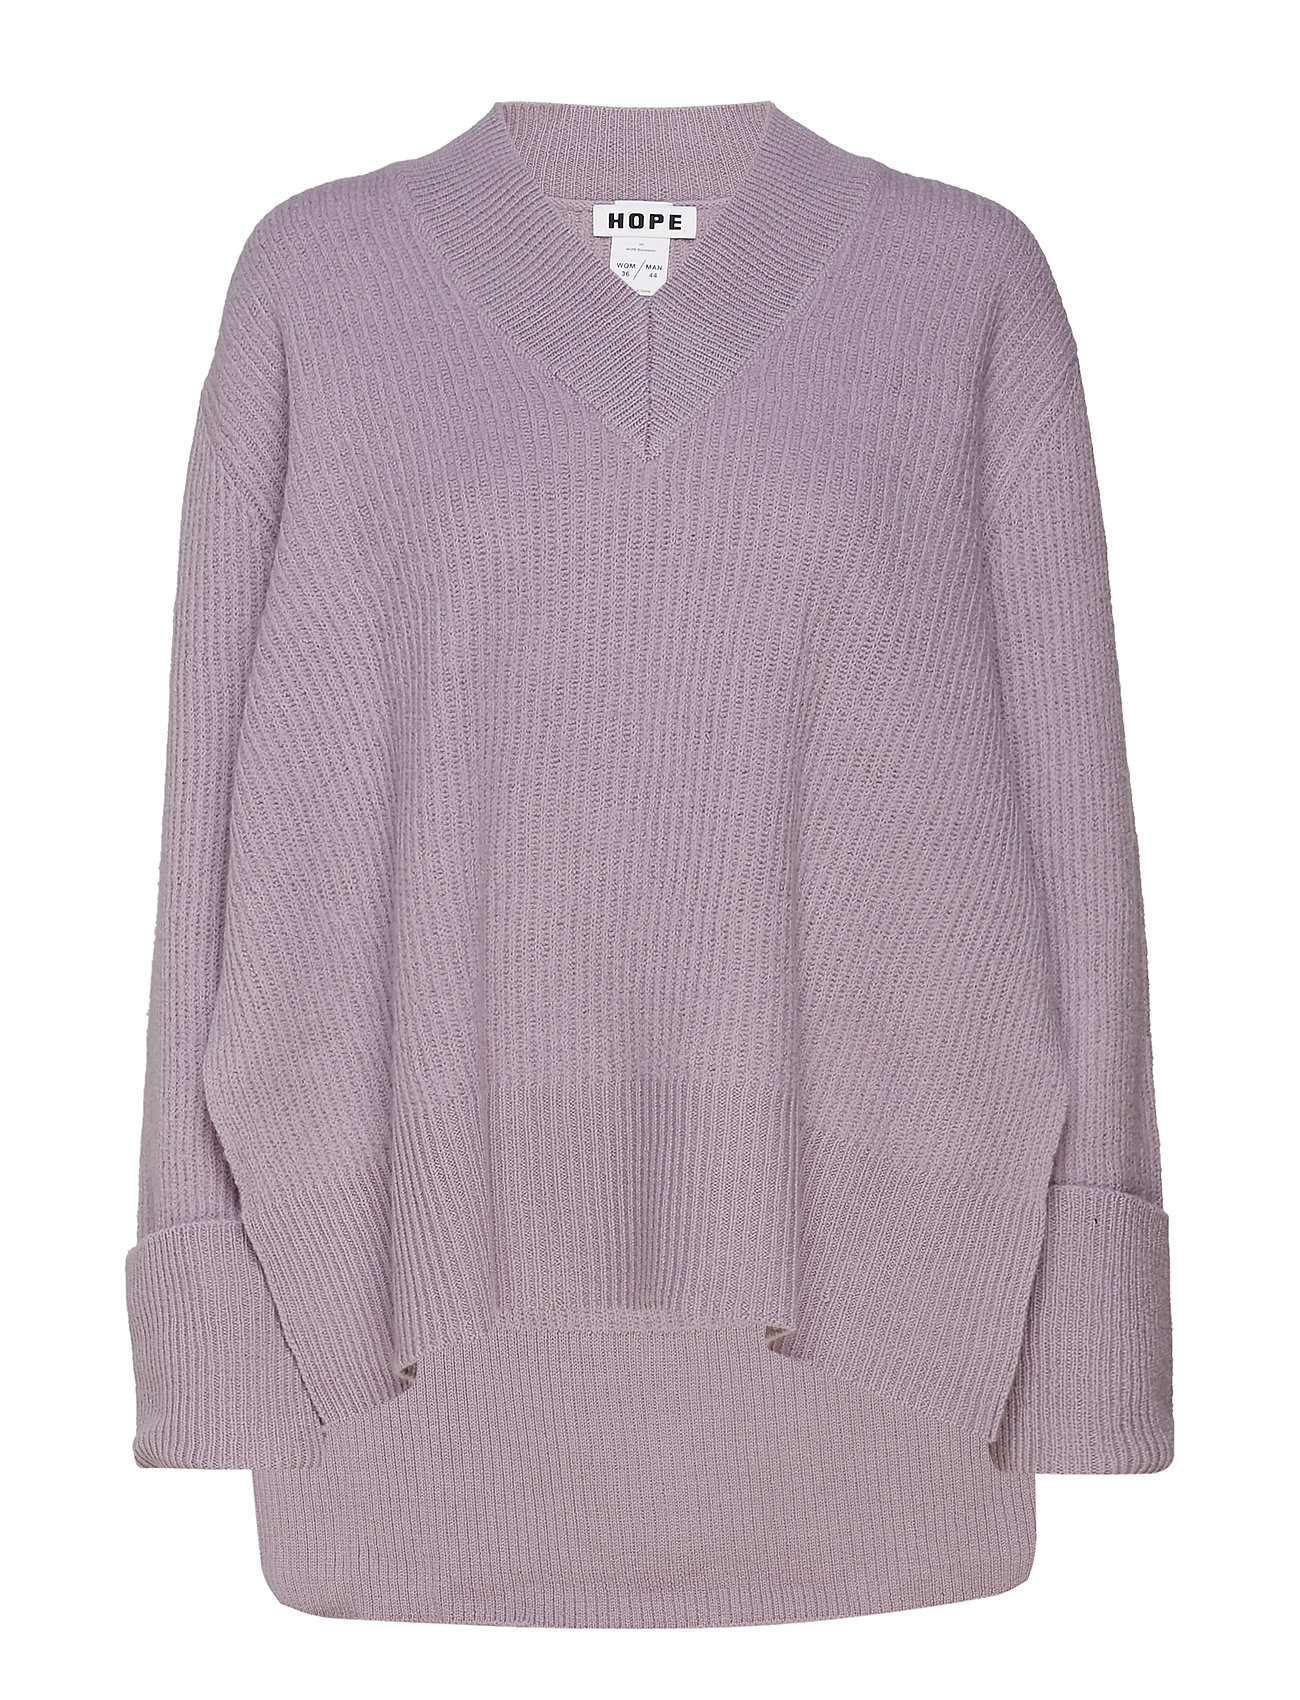 Hope Moon Sweater - LAVENDER